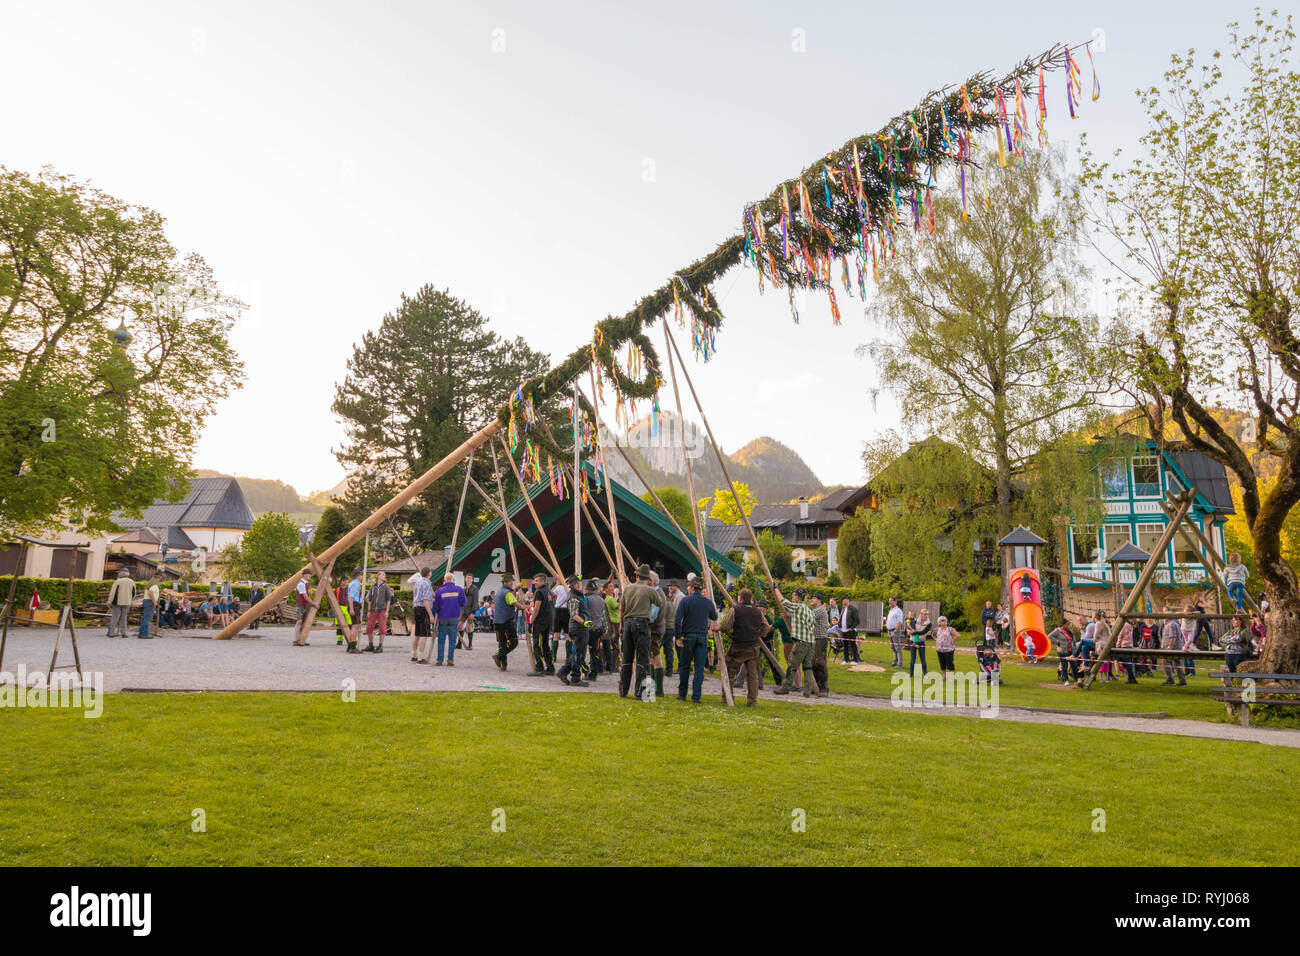 St.Gilgen, Austria - April 30, 2018: Traditional decorated maypole is being erected during folk festival in austrian  alpine village. - Stock Image